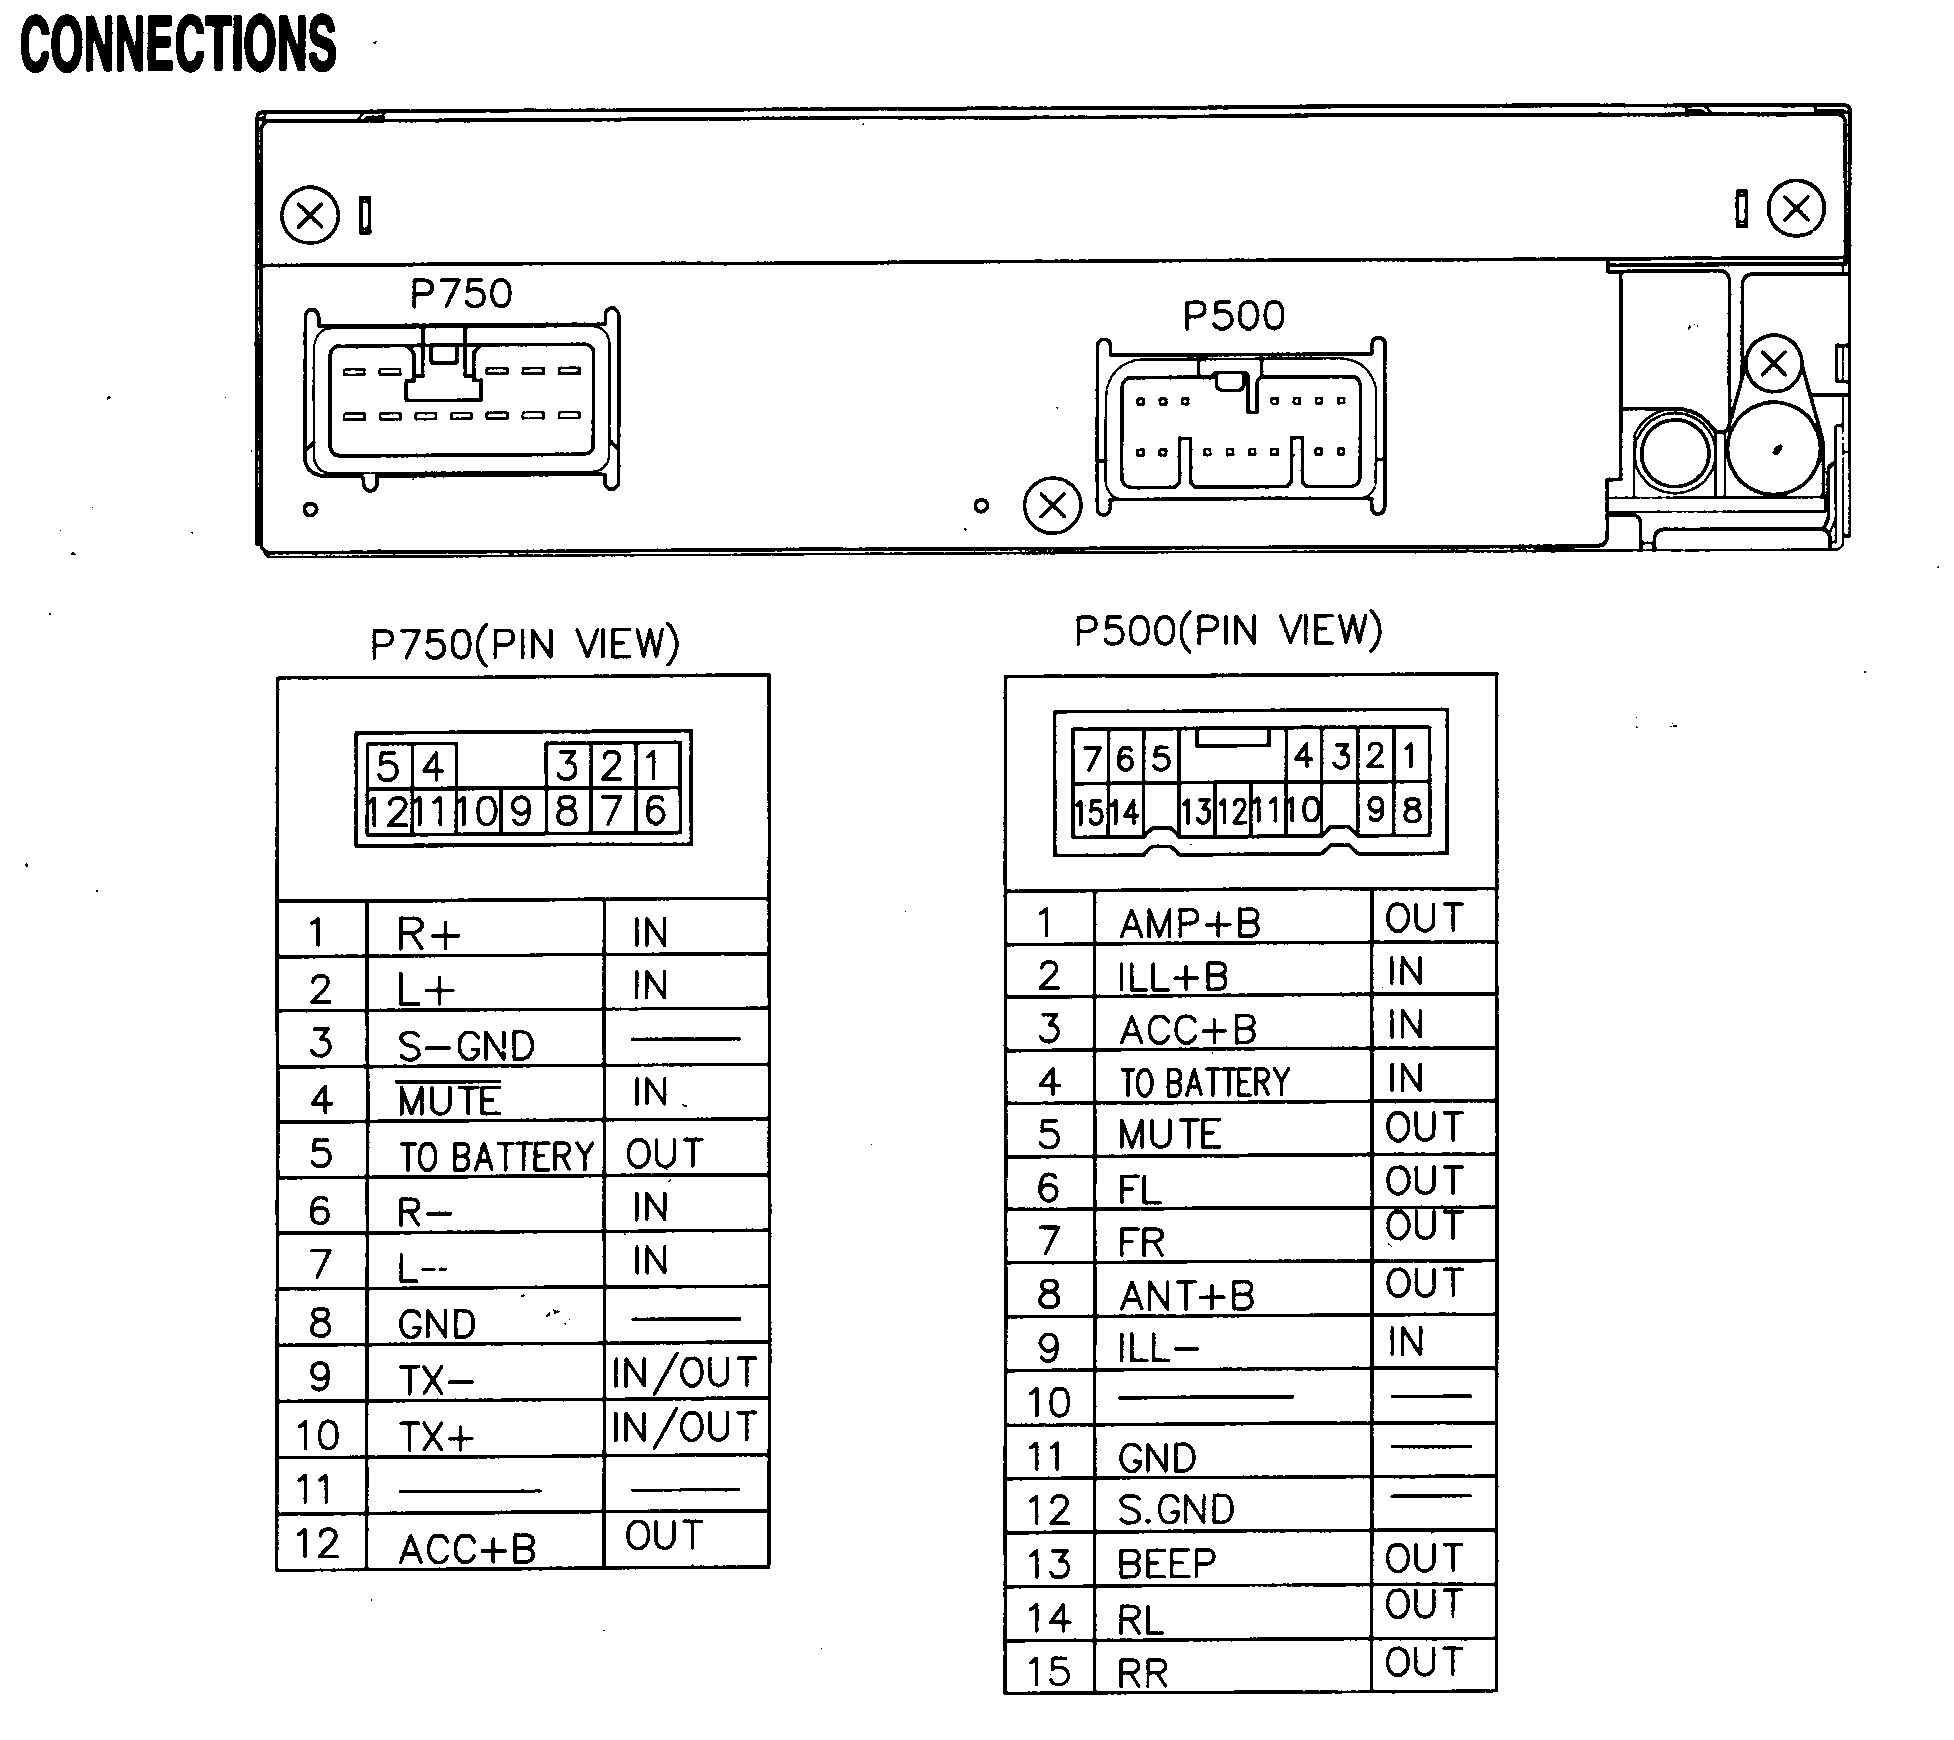 Wiring Diagram for Car Audio Connector 2000 Connectors Wiring Diagram Get Free Image About Wiring Of Wiring Diagram for Car Audio